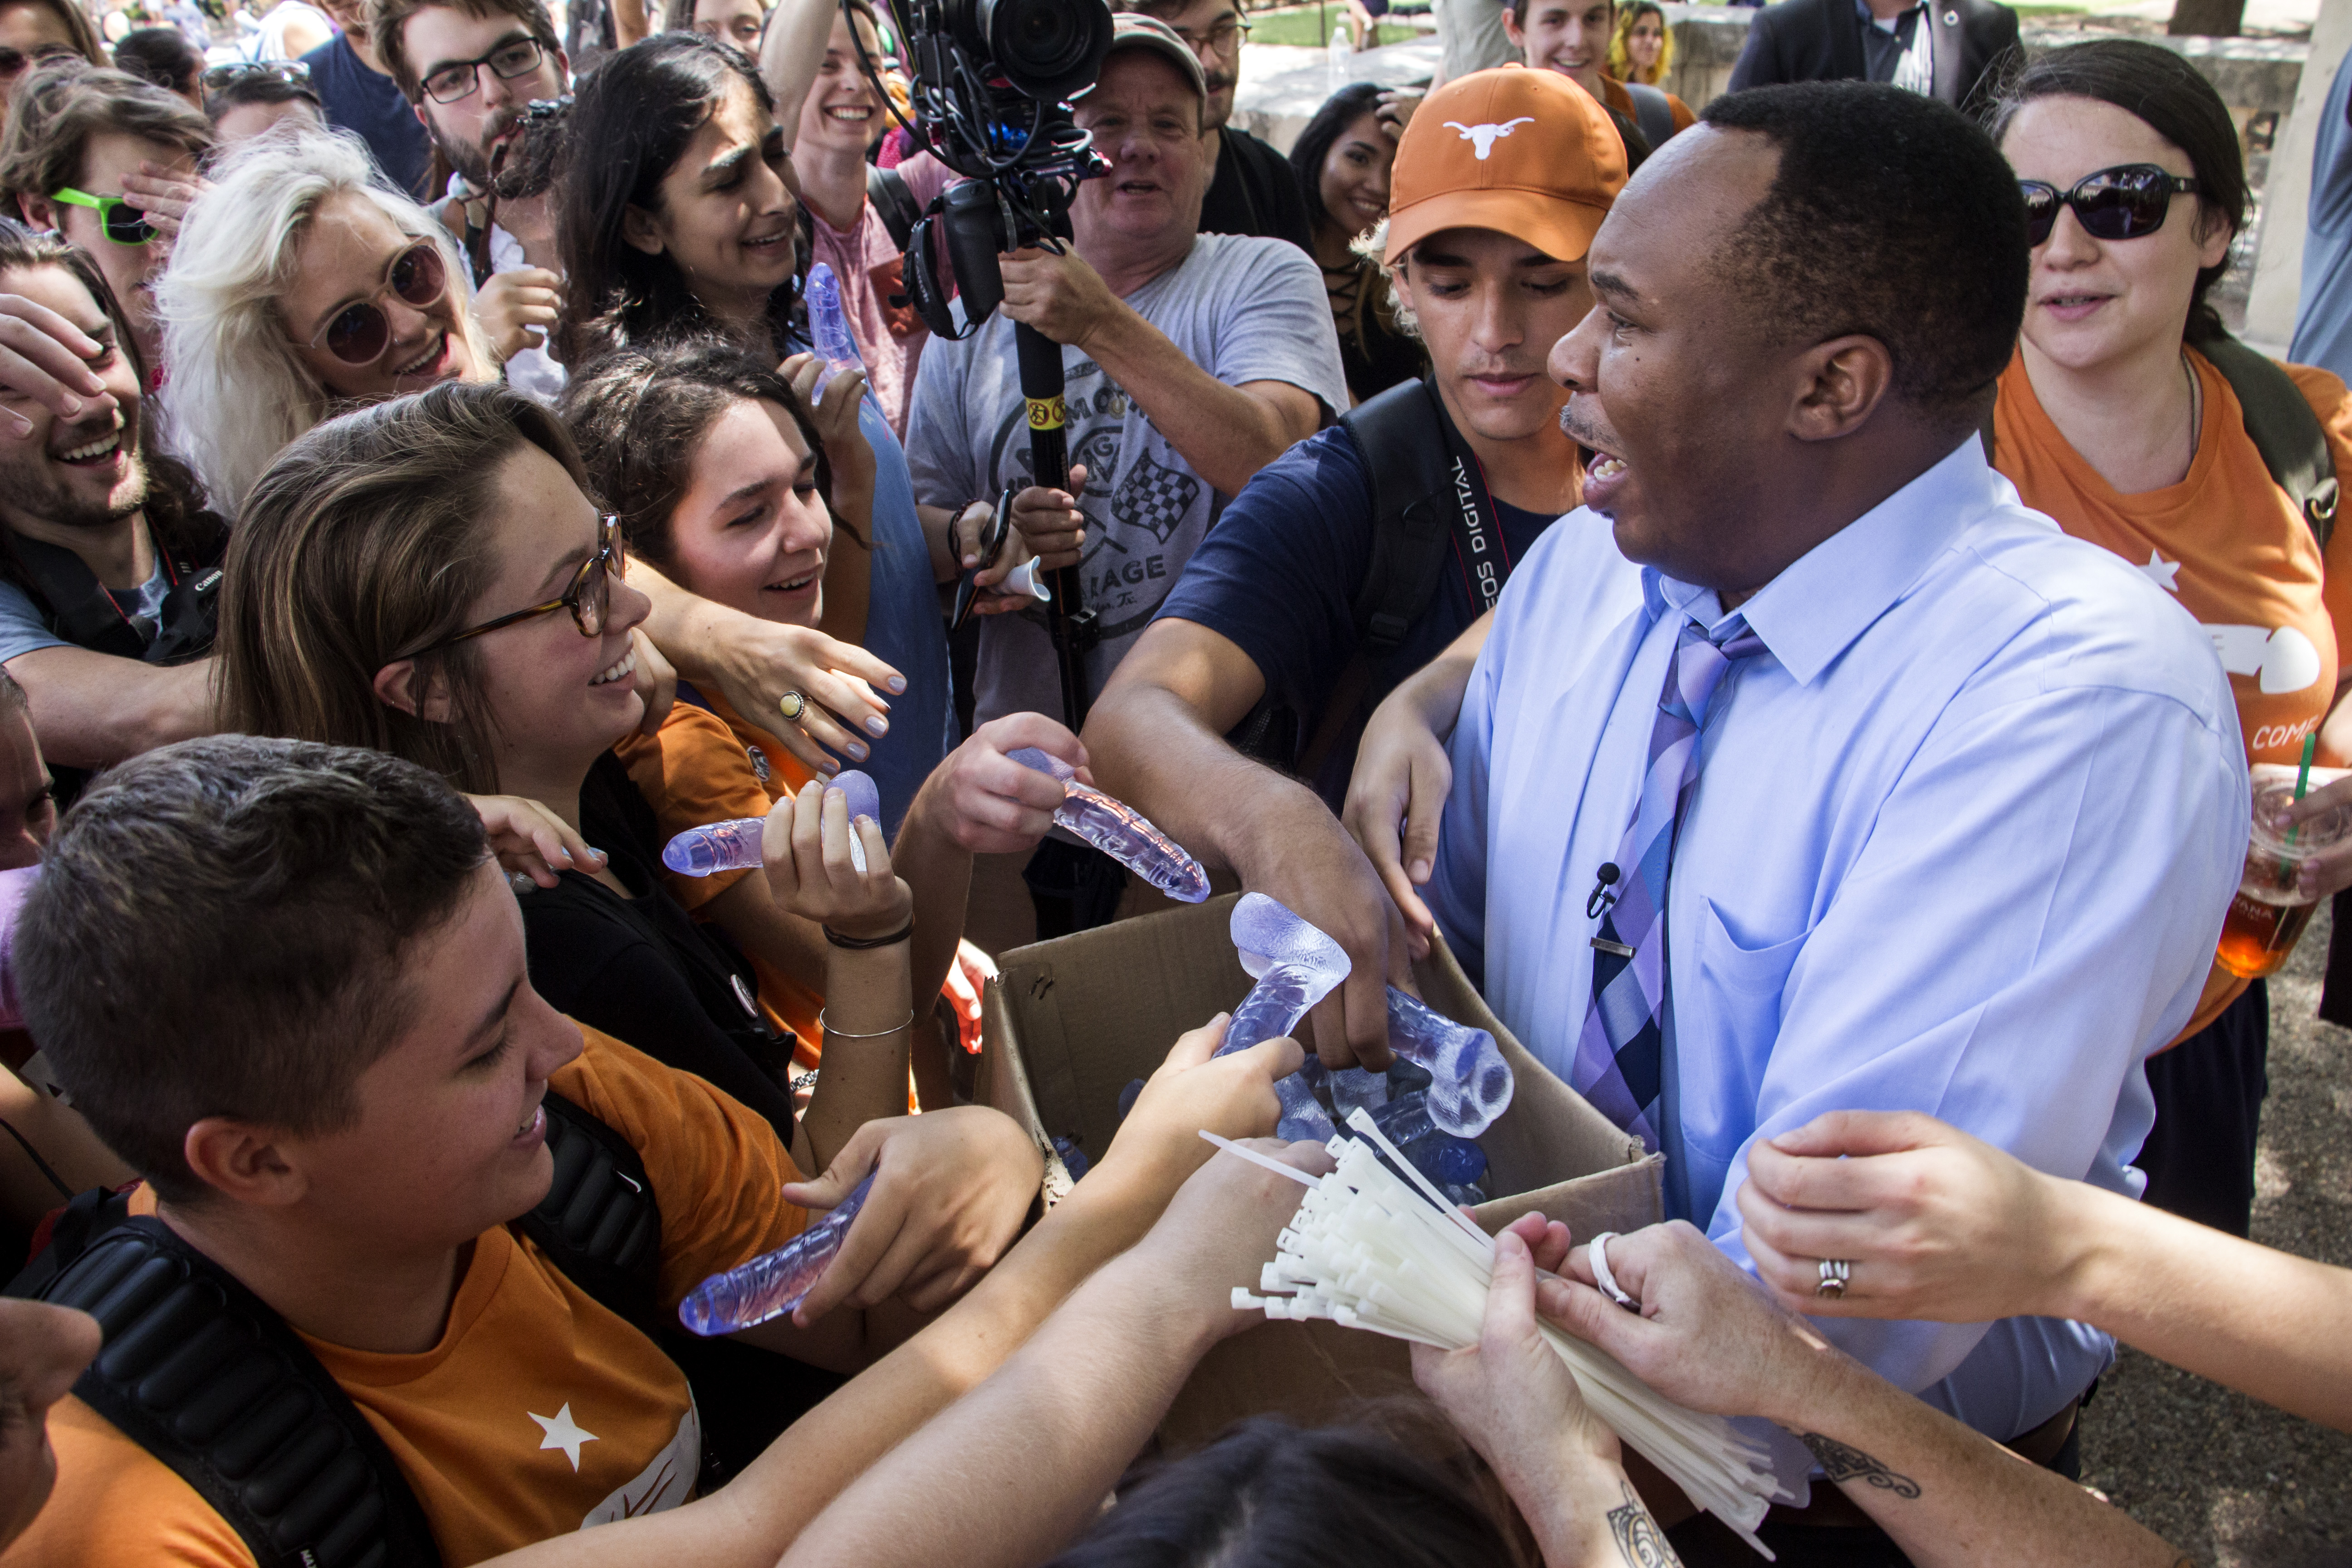 Roy Wood Jr. passes out dildos to University of Texas students.